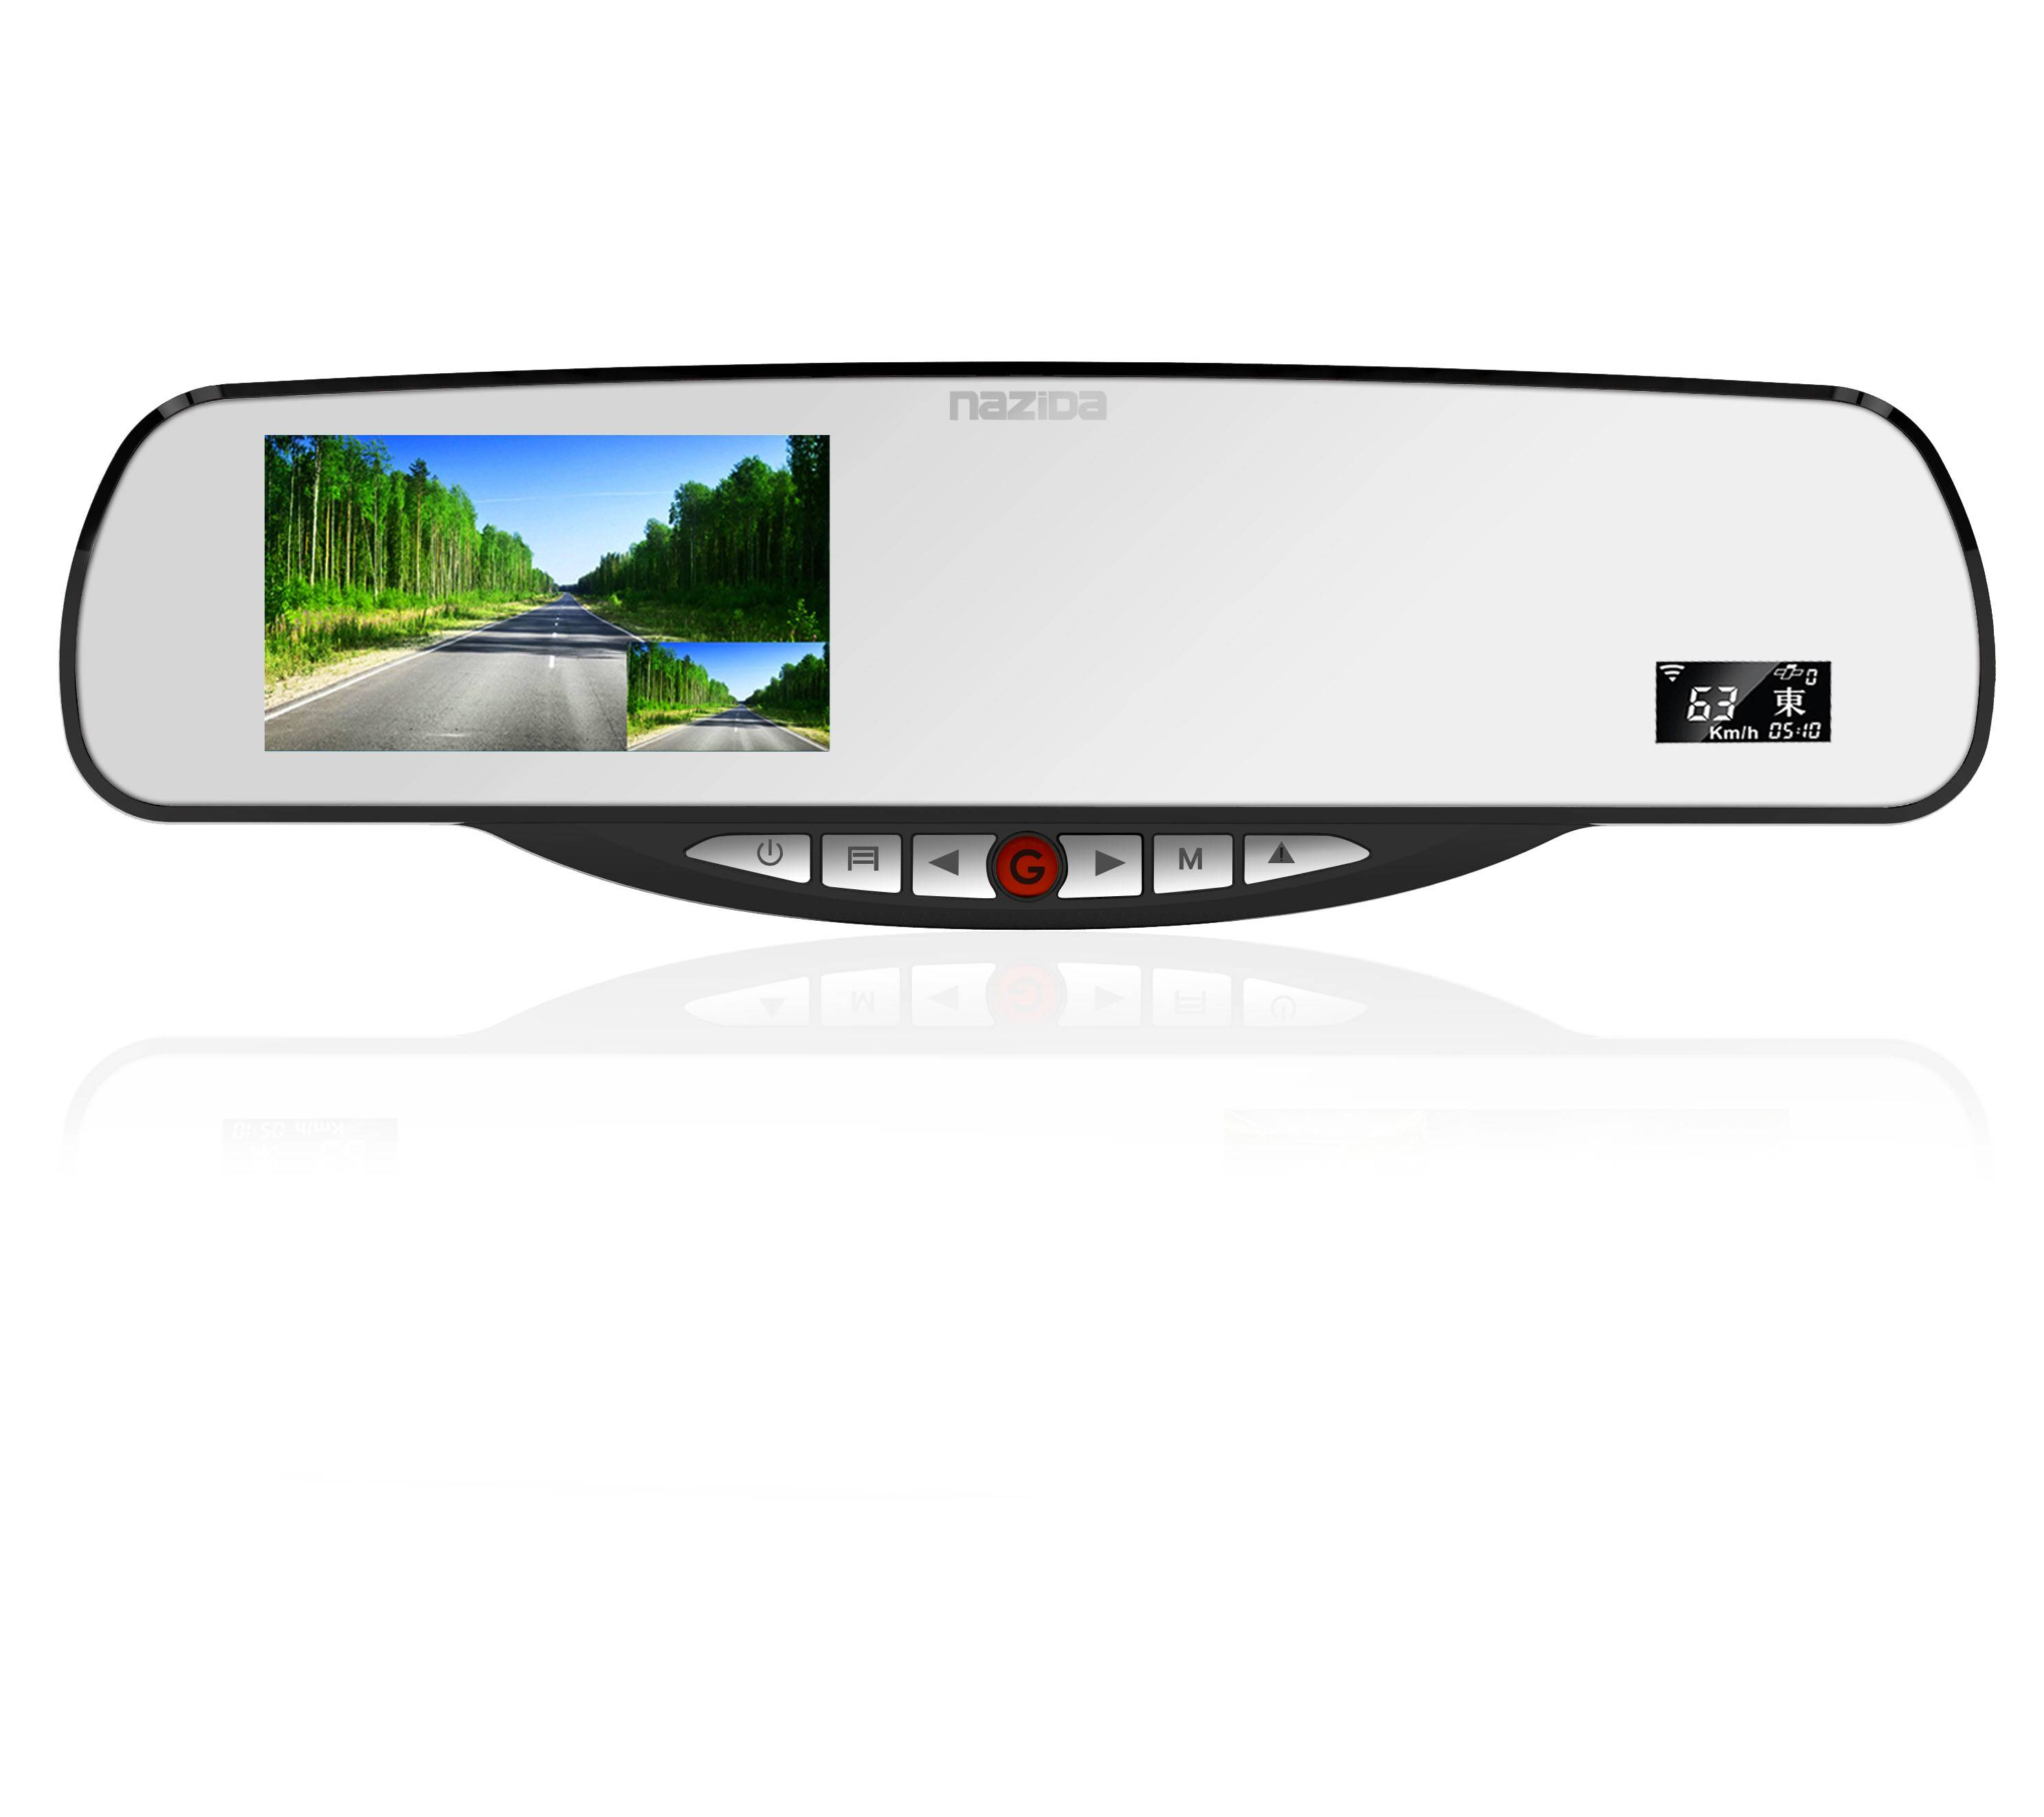 Super Wide Ange 140 Degree Drive Recorder for Car with 4.3 Inch Screen(MTR-8700)